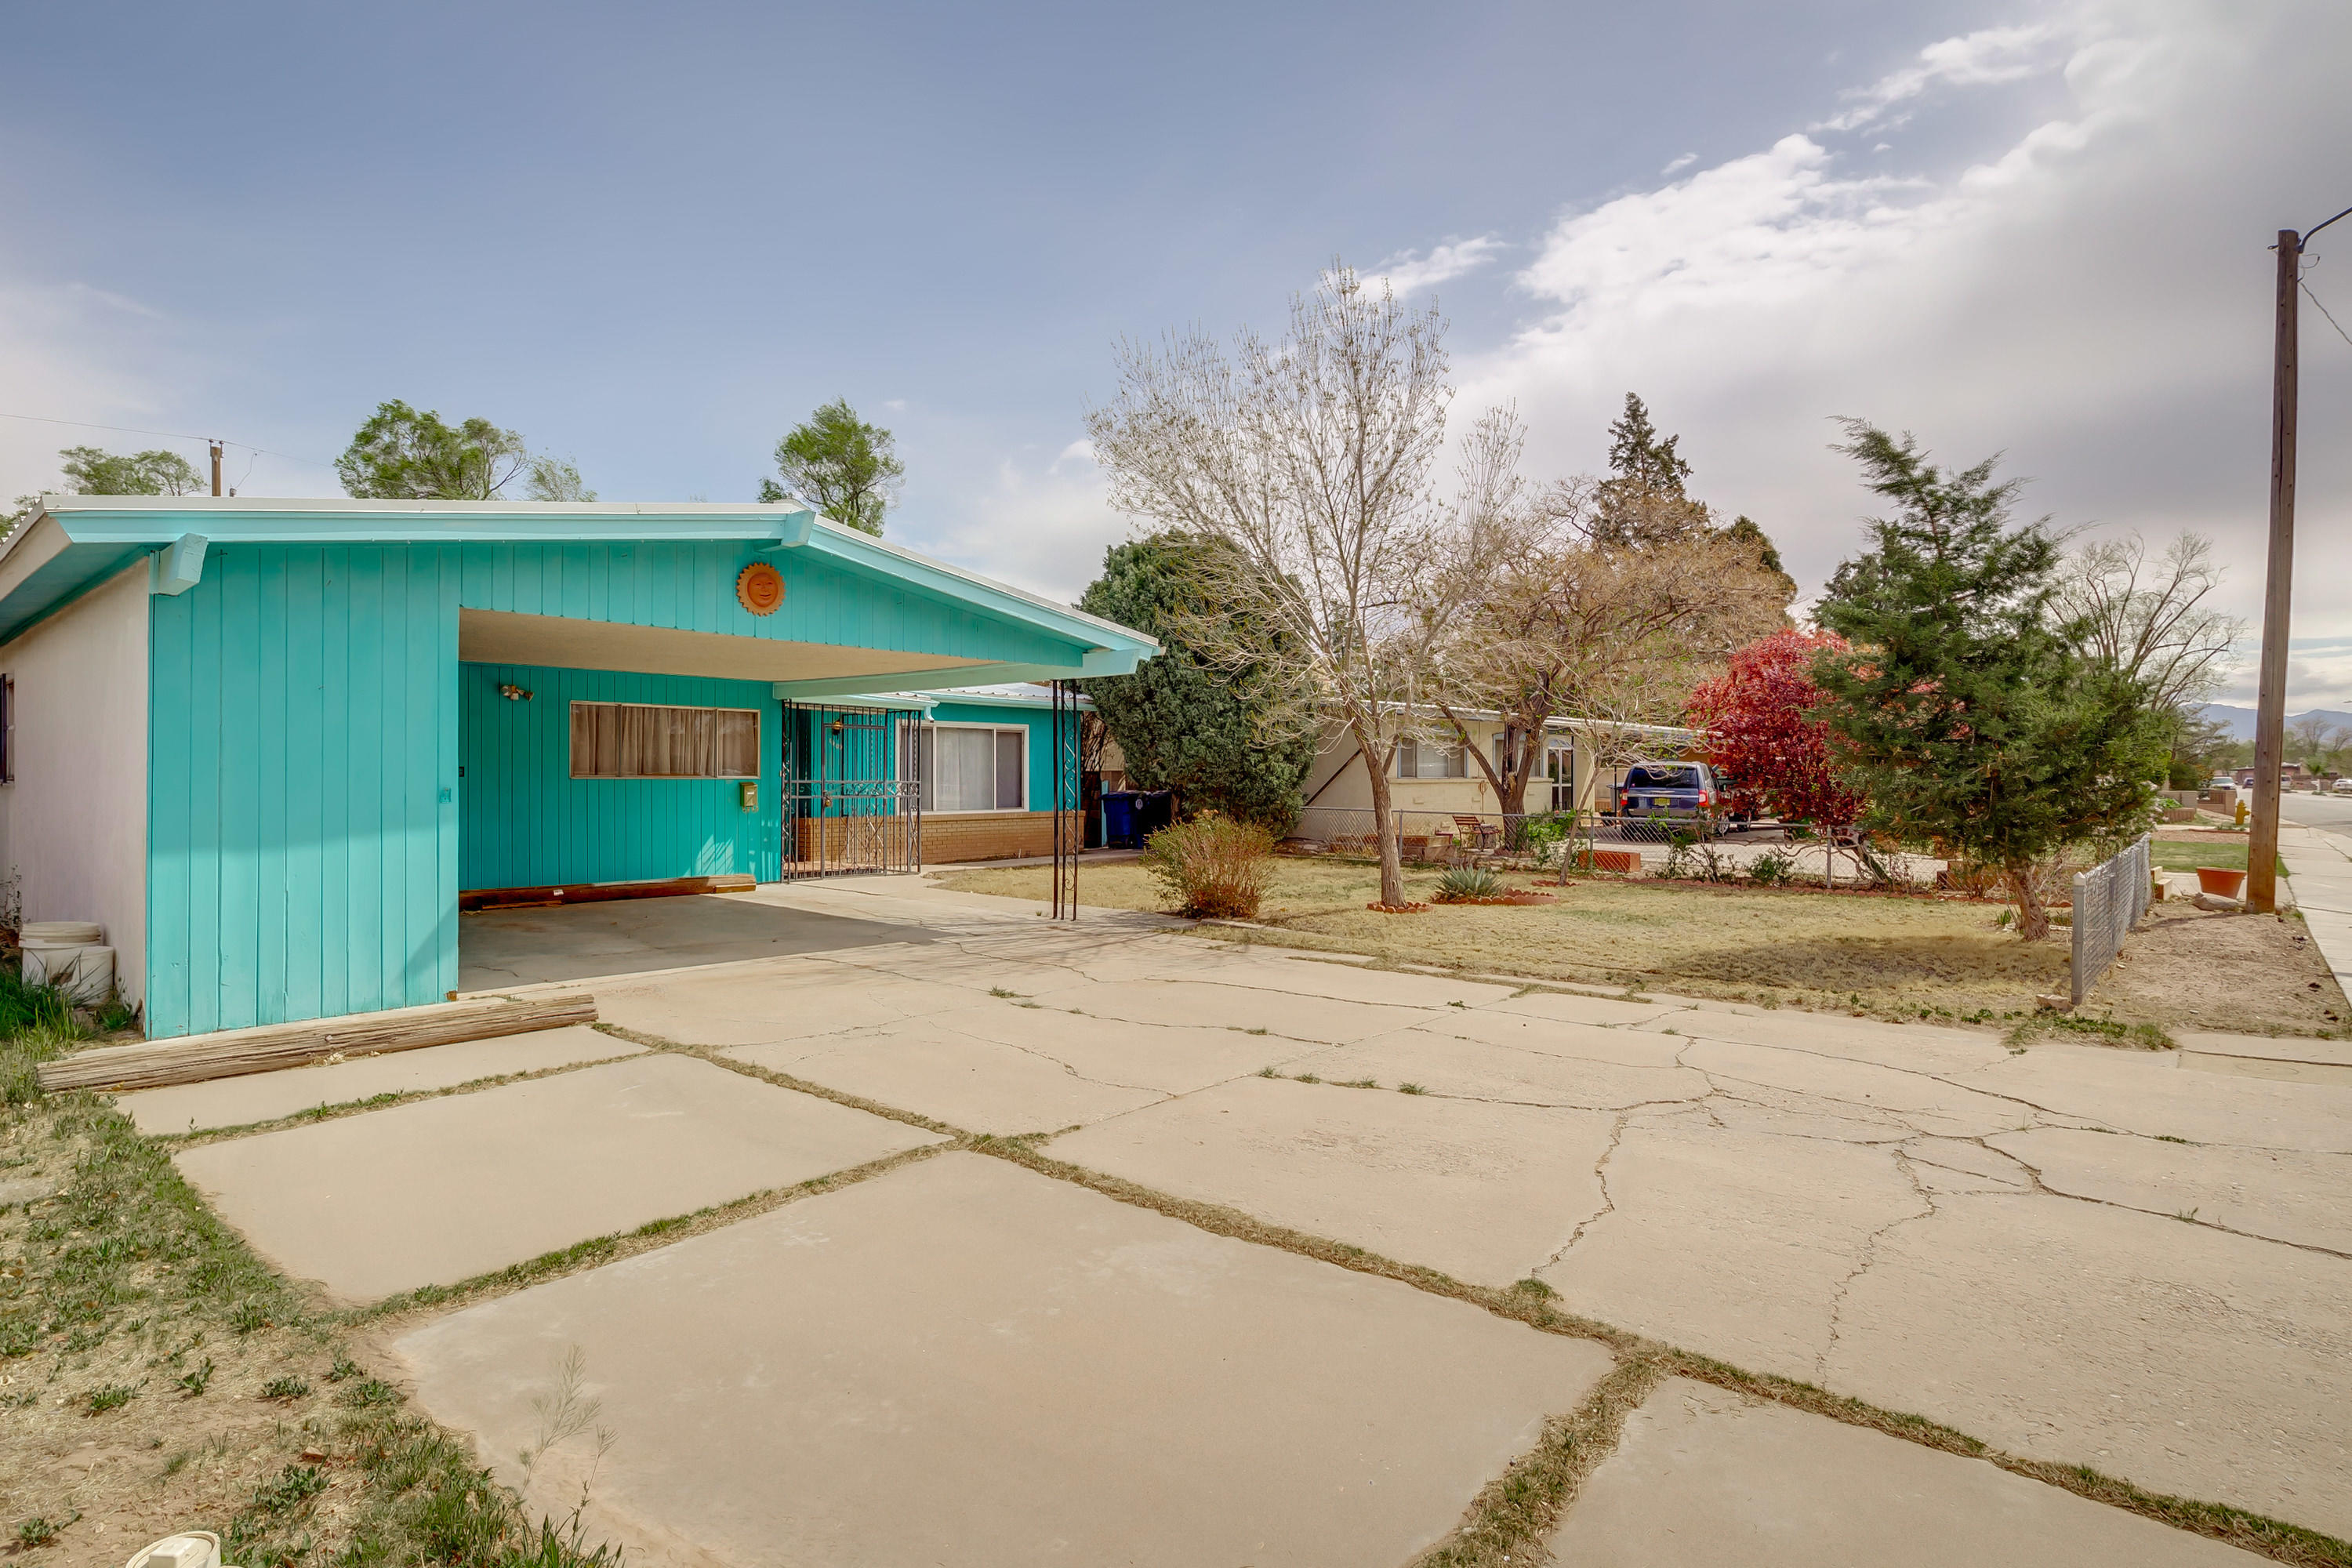 Large North Valley Home, Same Owner since 1971, Quiet Neighborhood, Long time neighbors, Very close to Valley High School!!